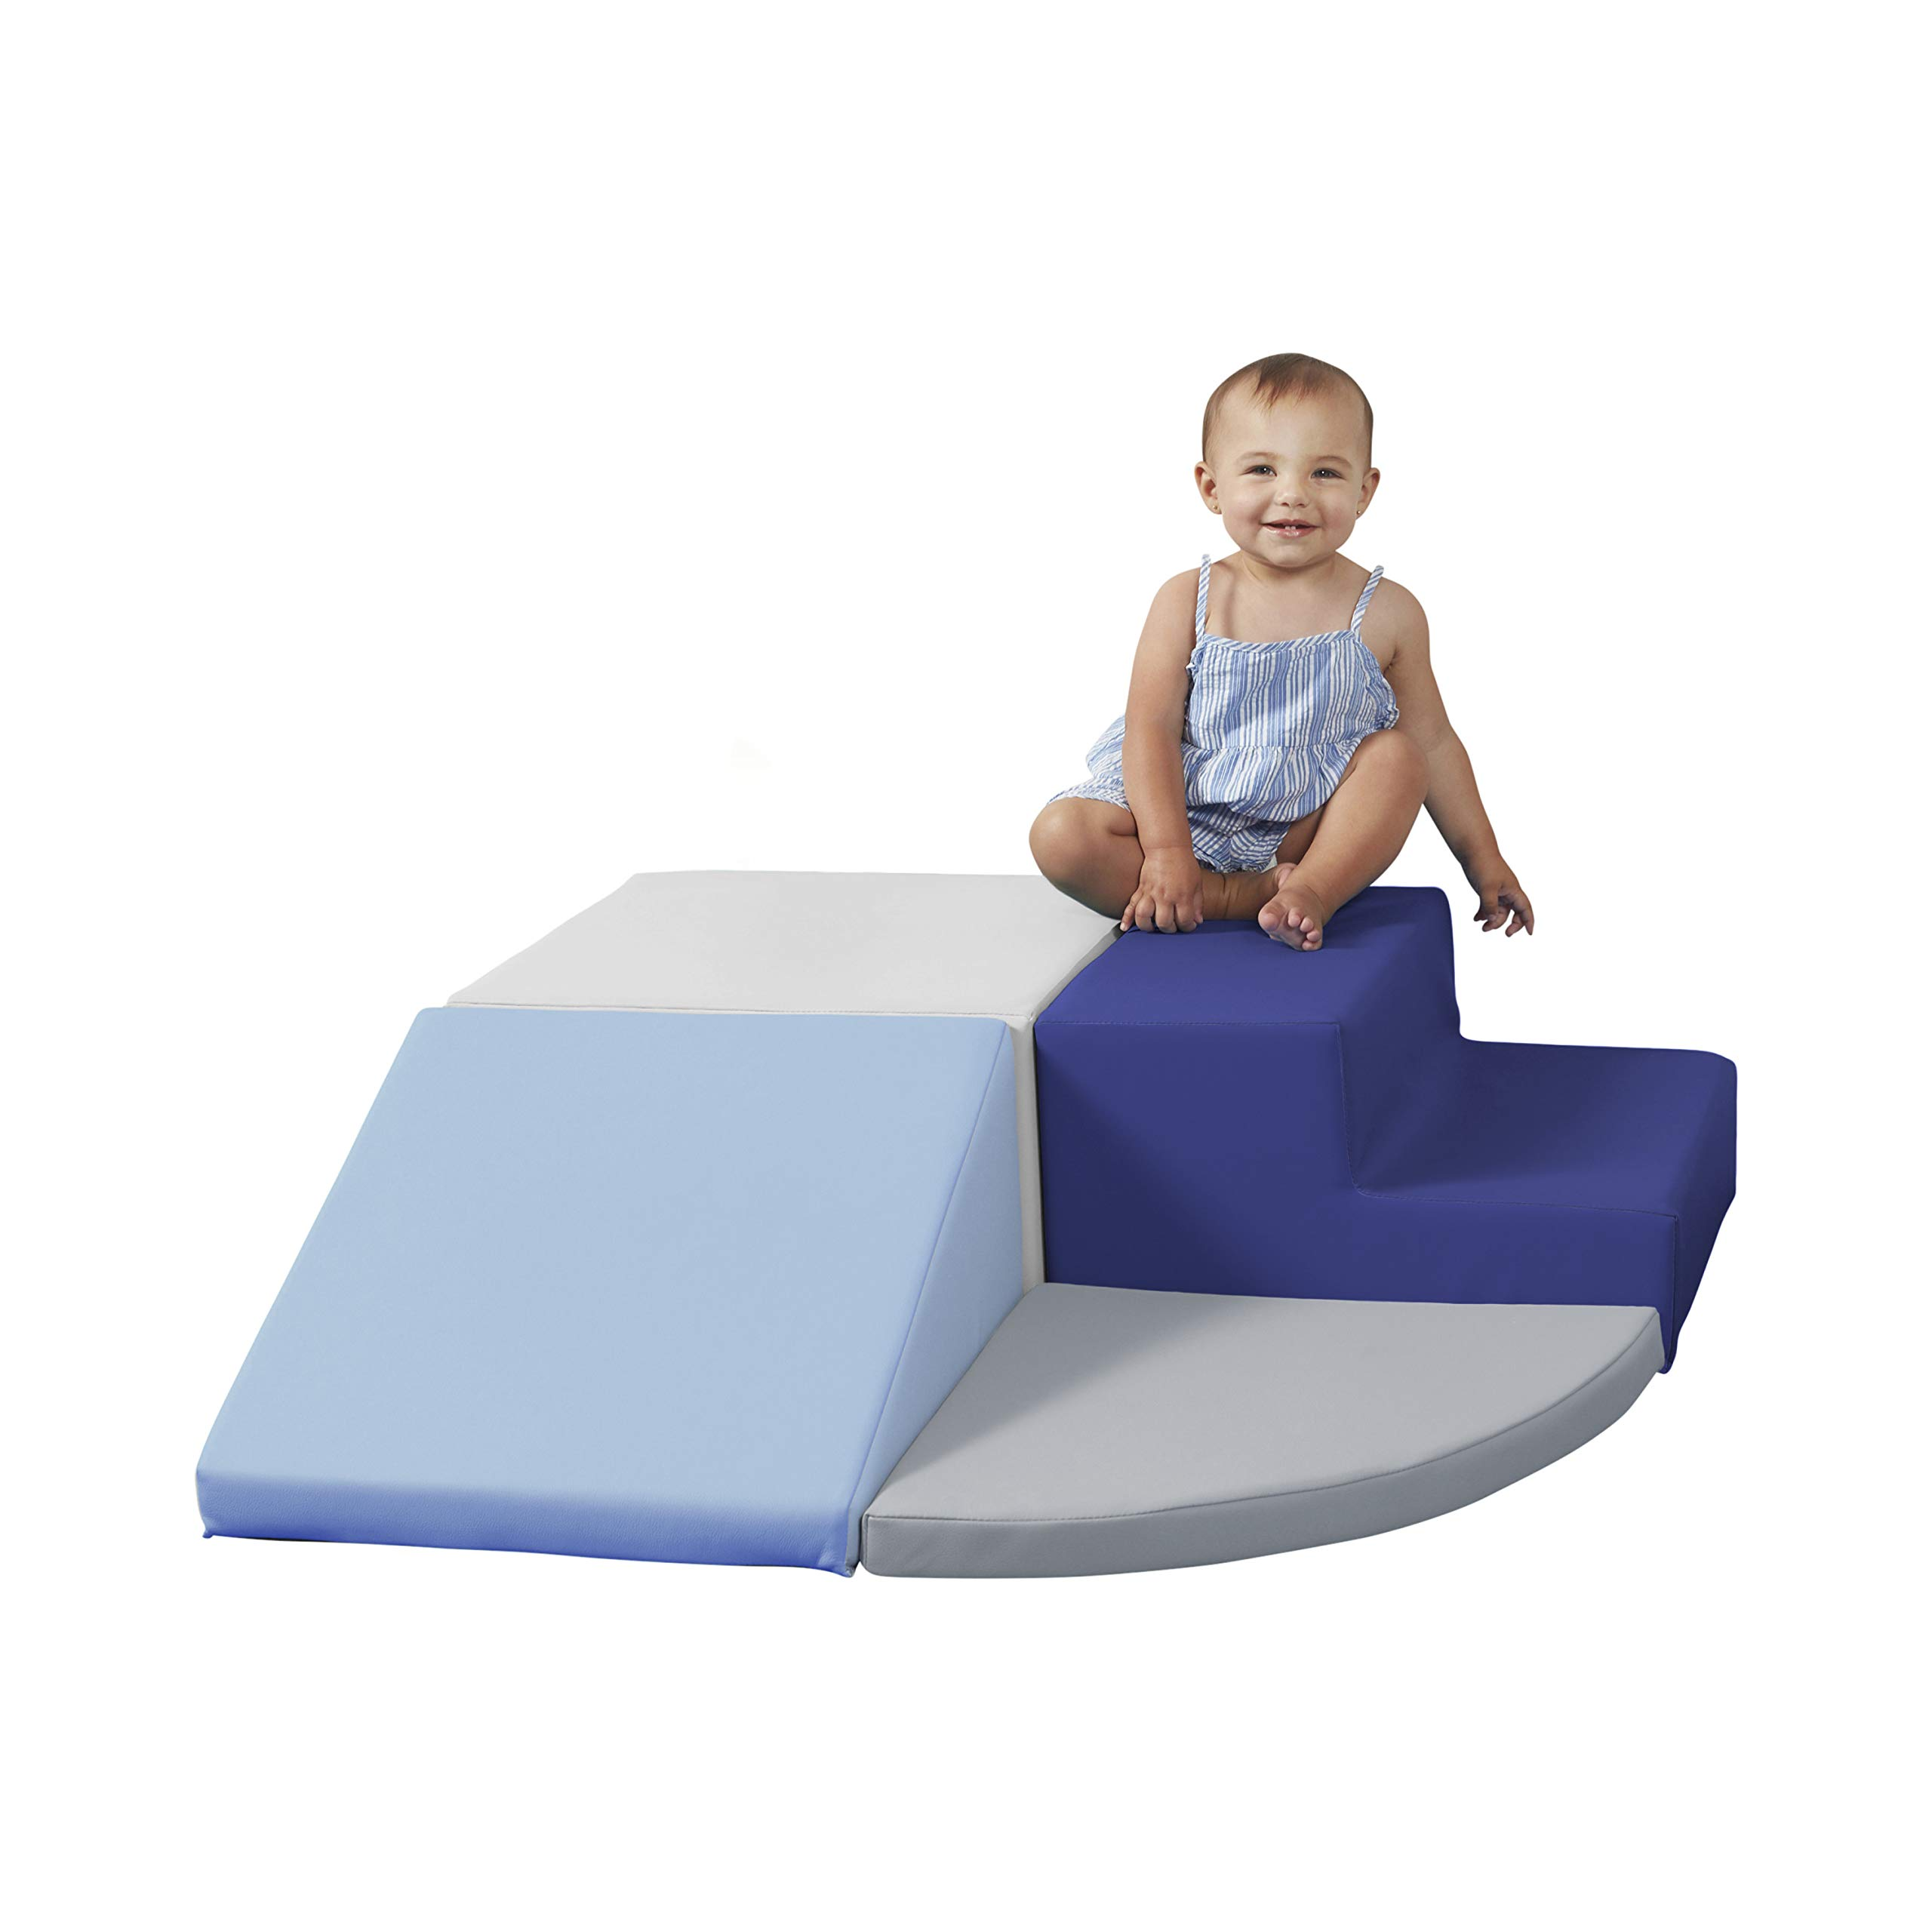 SoftScape Toddler Playtime Corner Climber, Indoor Active Play Structure for Toddlers and Kids, Safe Soft Foam for Crawling and Sliding (3-Piece Set) - Navy/Powder Blue by Factory Direct Partners